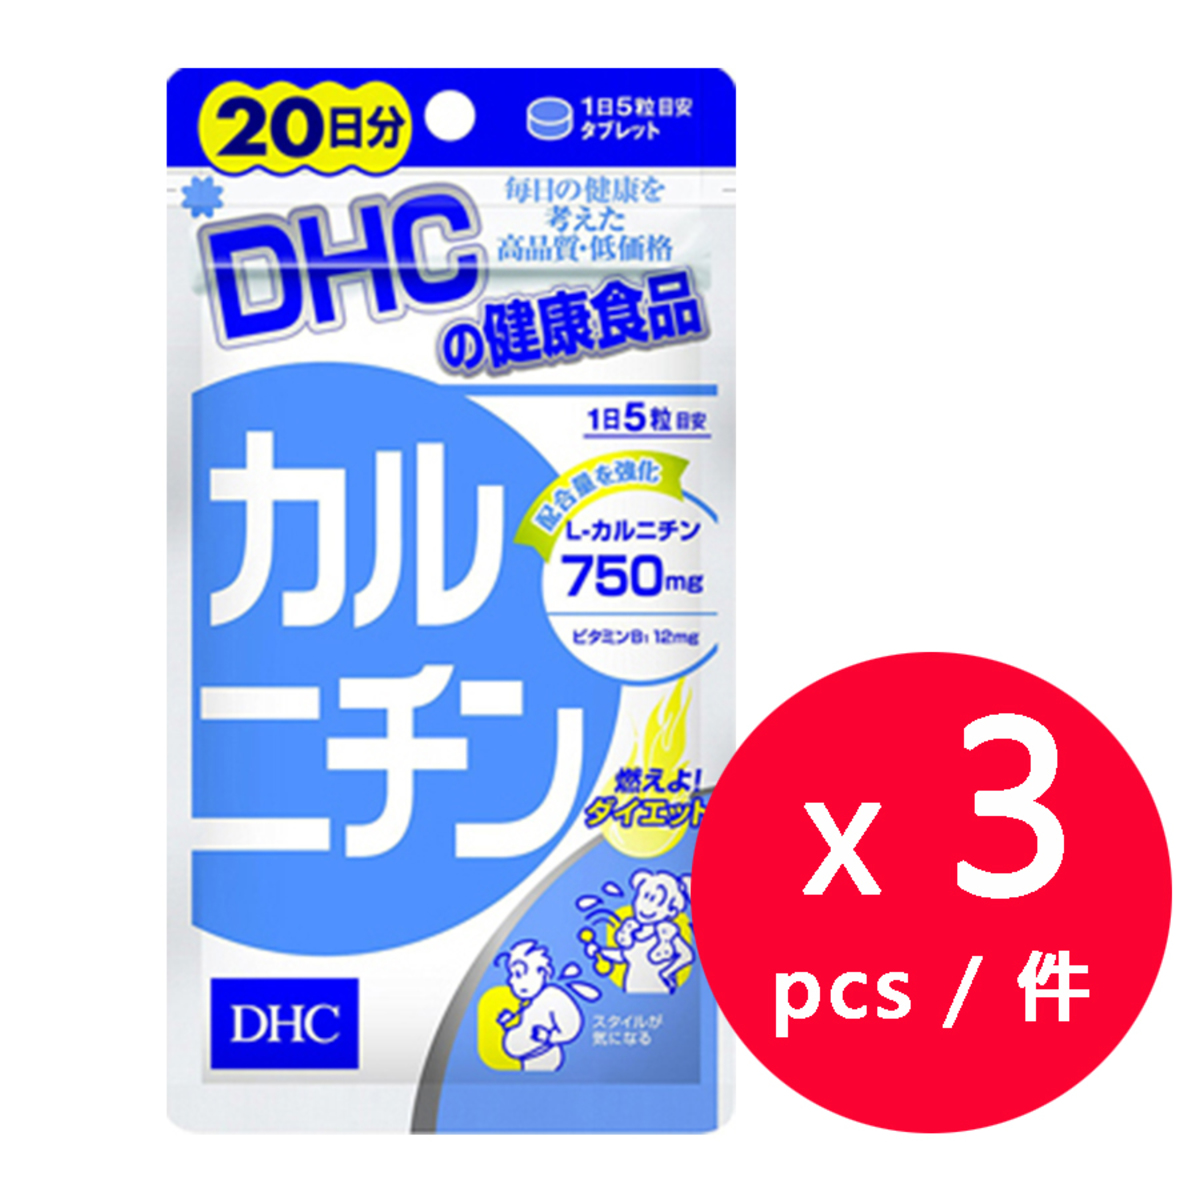 DHC CARNITINE supplement 20-days x 3 packs